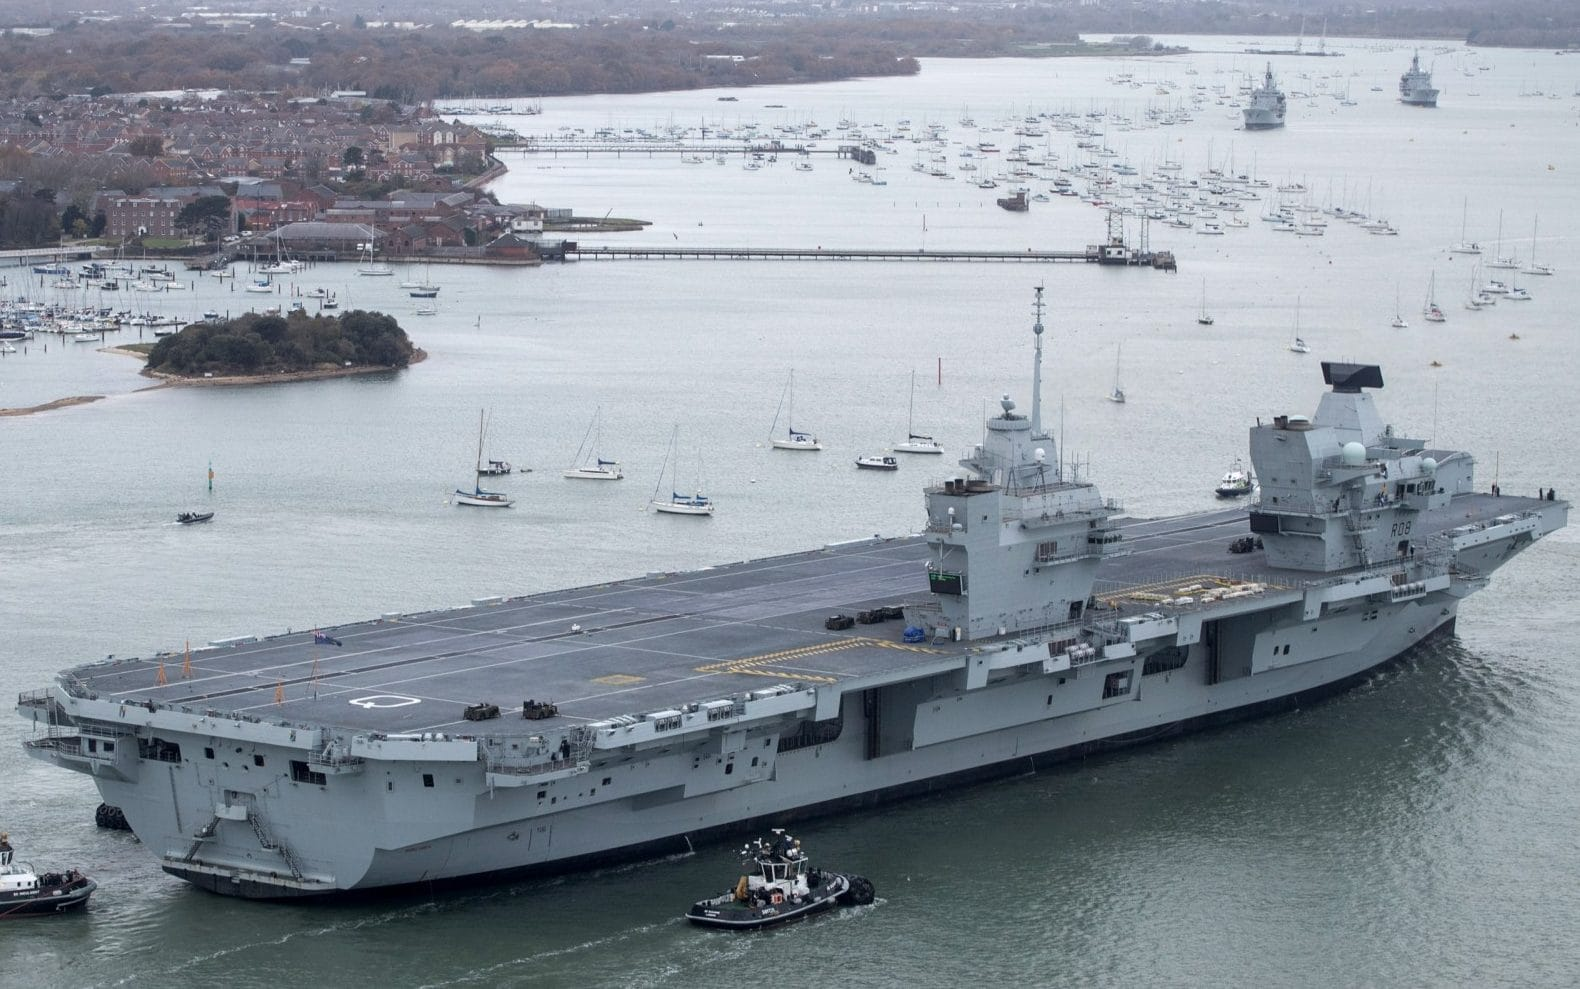 At 280m (918ft) long and with an estimated half-a-century working life, HMS Queen Elizabeth is the biggest carrier ever built by the UK